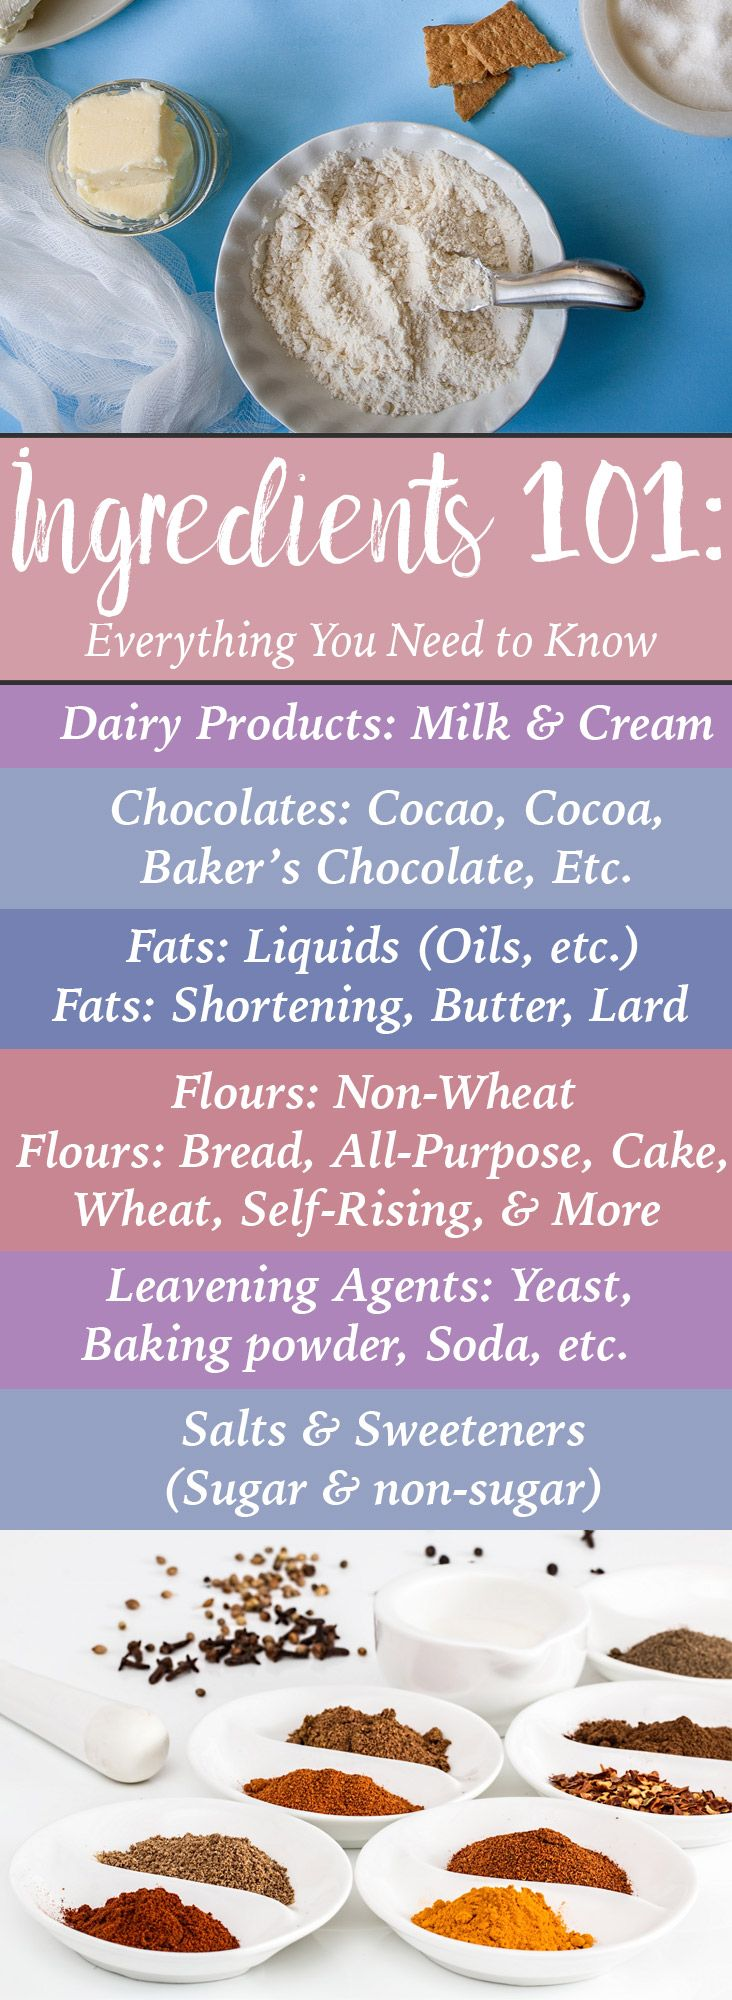 Ingredients 101: Everything you need to know. Chocolates, dairy, fats, flours (wheat & non-wheat), leavening agents, salts, sweeteners, & spices. Plus how to measure ingredients.